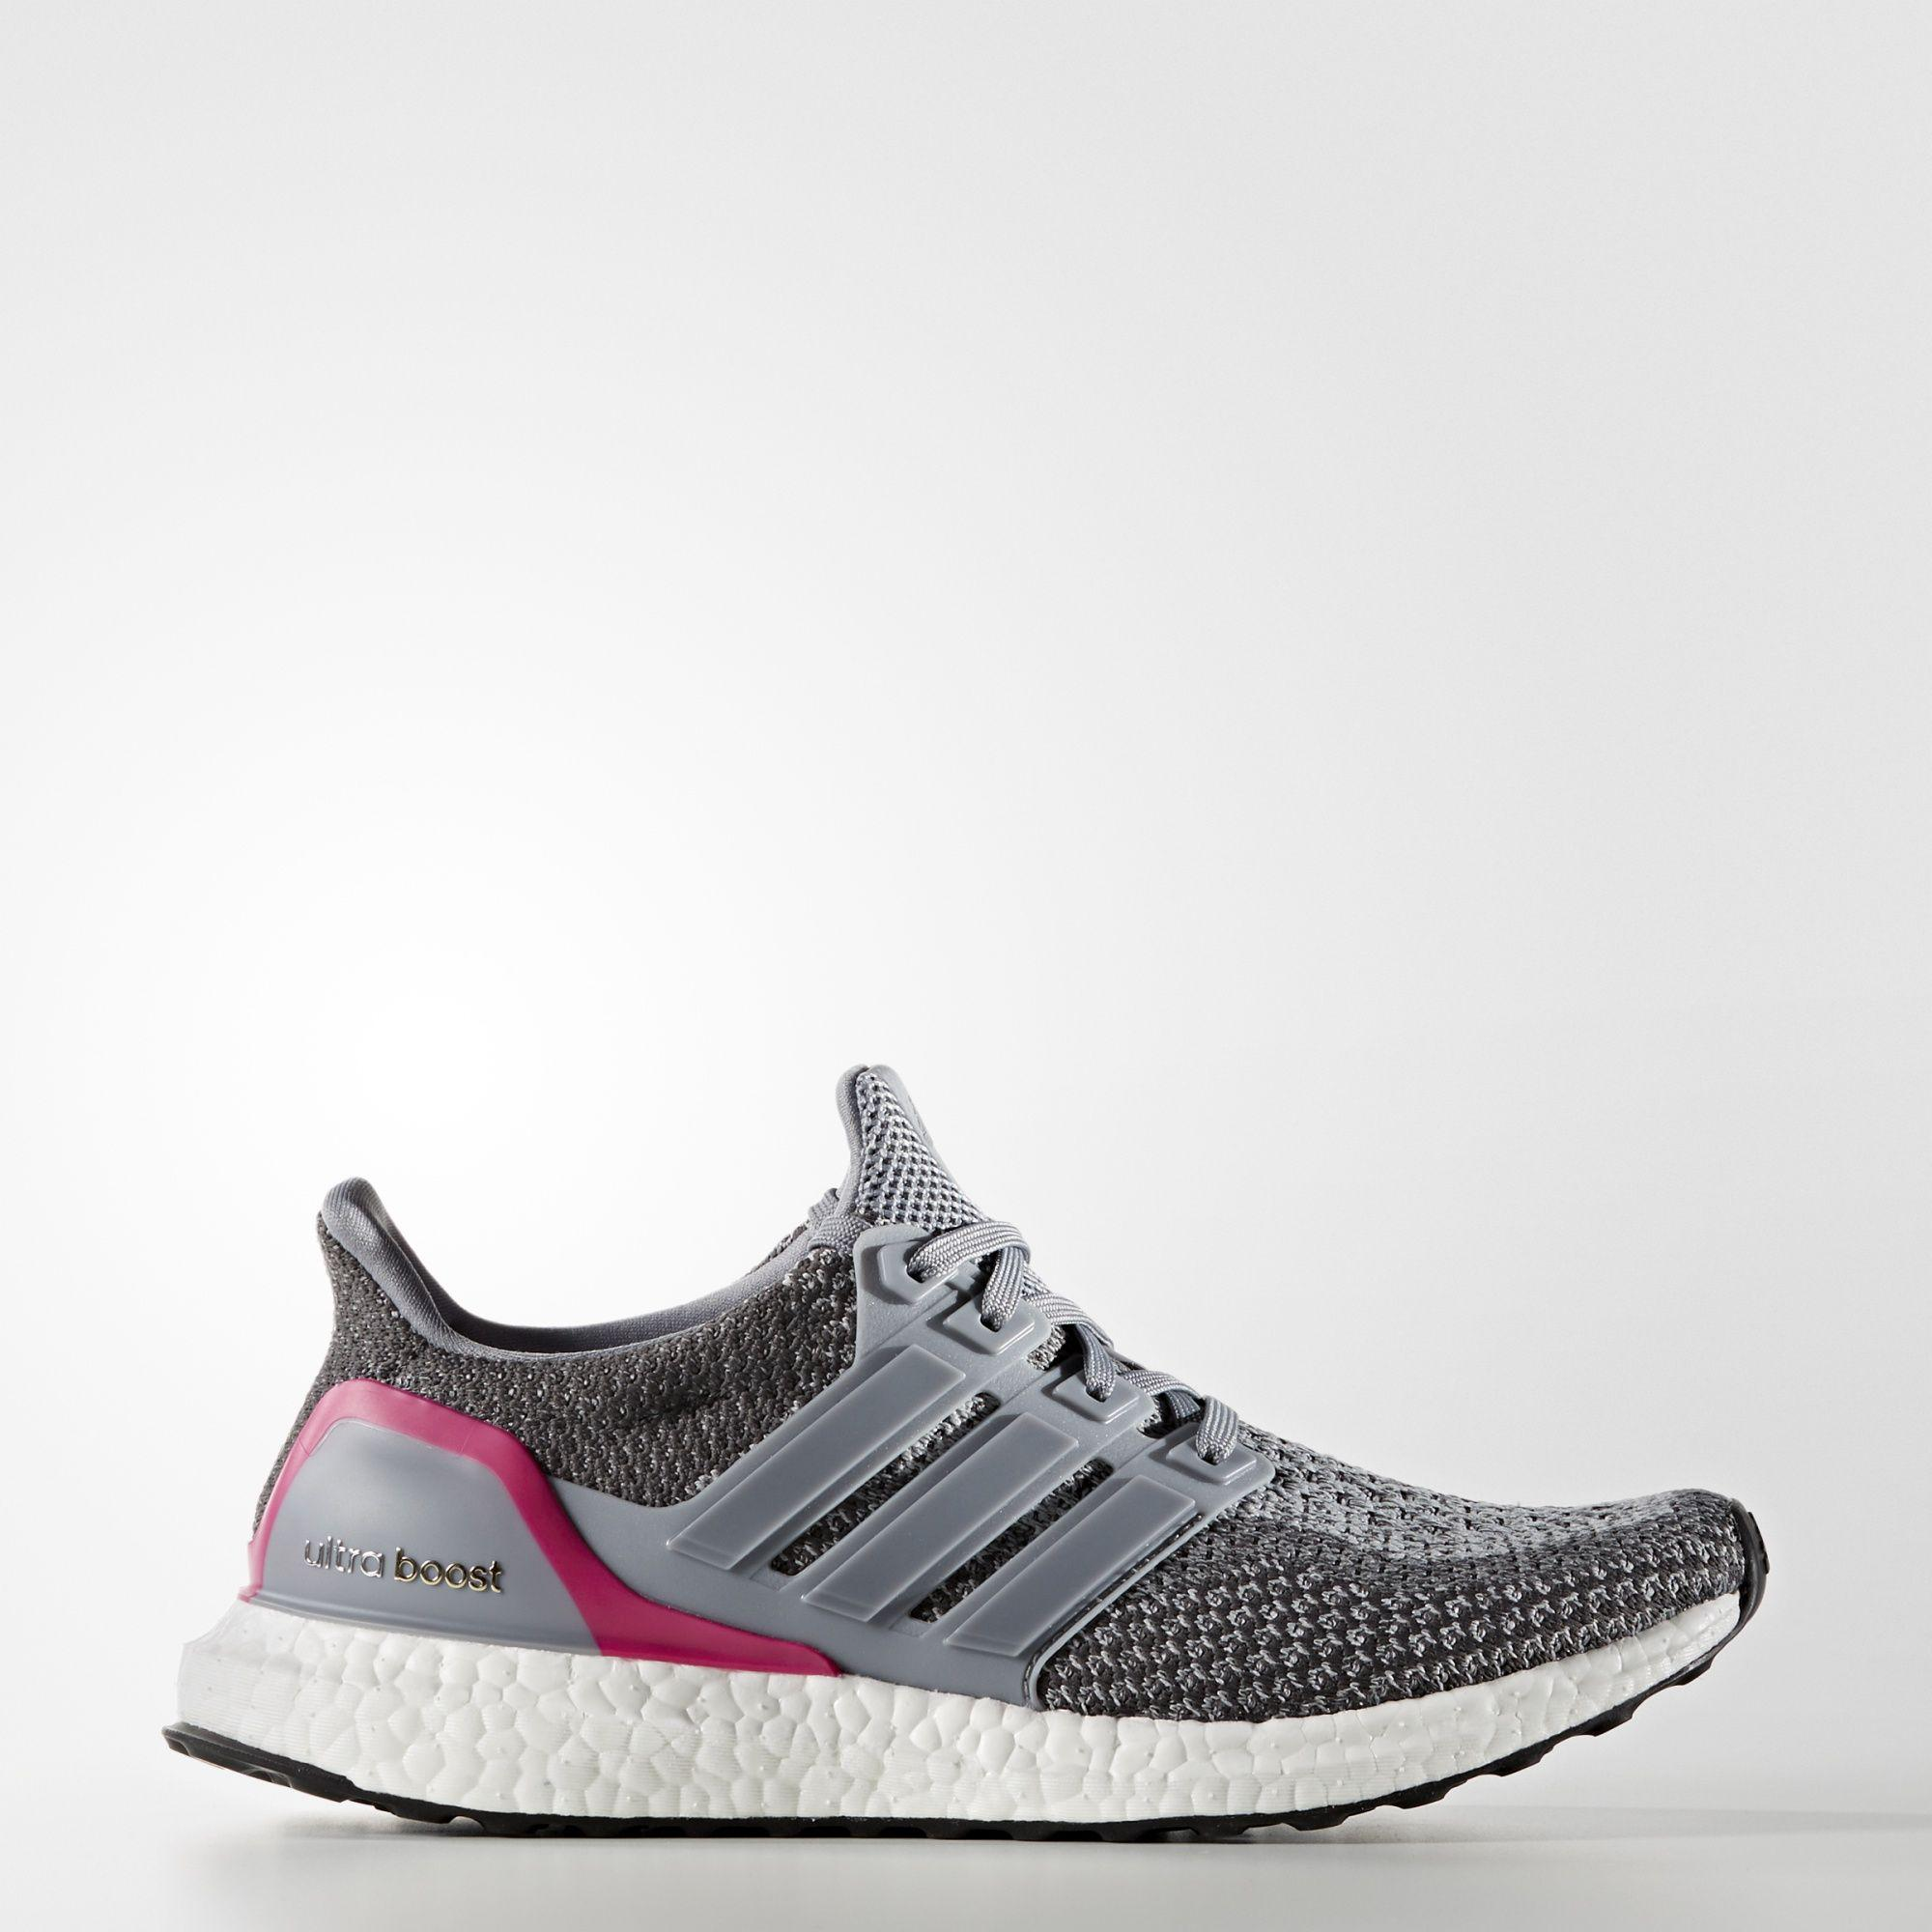 6c4b2c3e0 ... spain adidas womens ultra boost running shoes grey pink 1e83c fb418